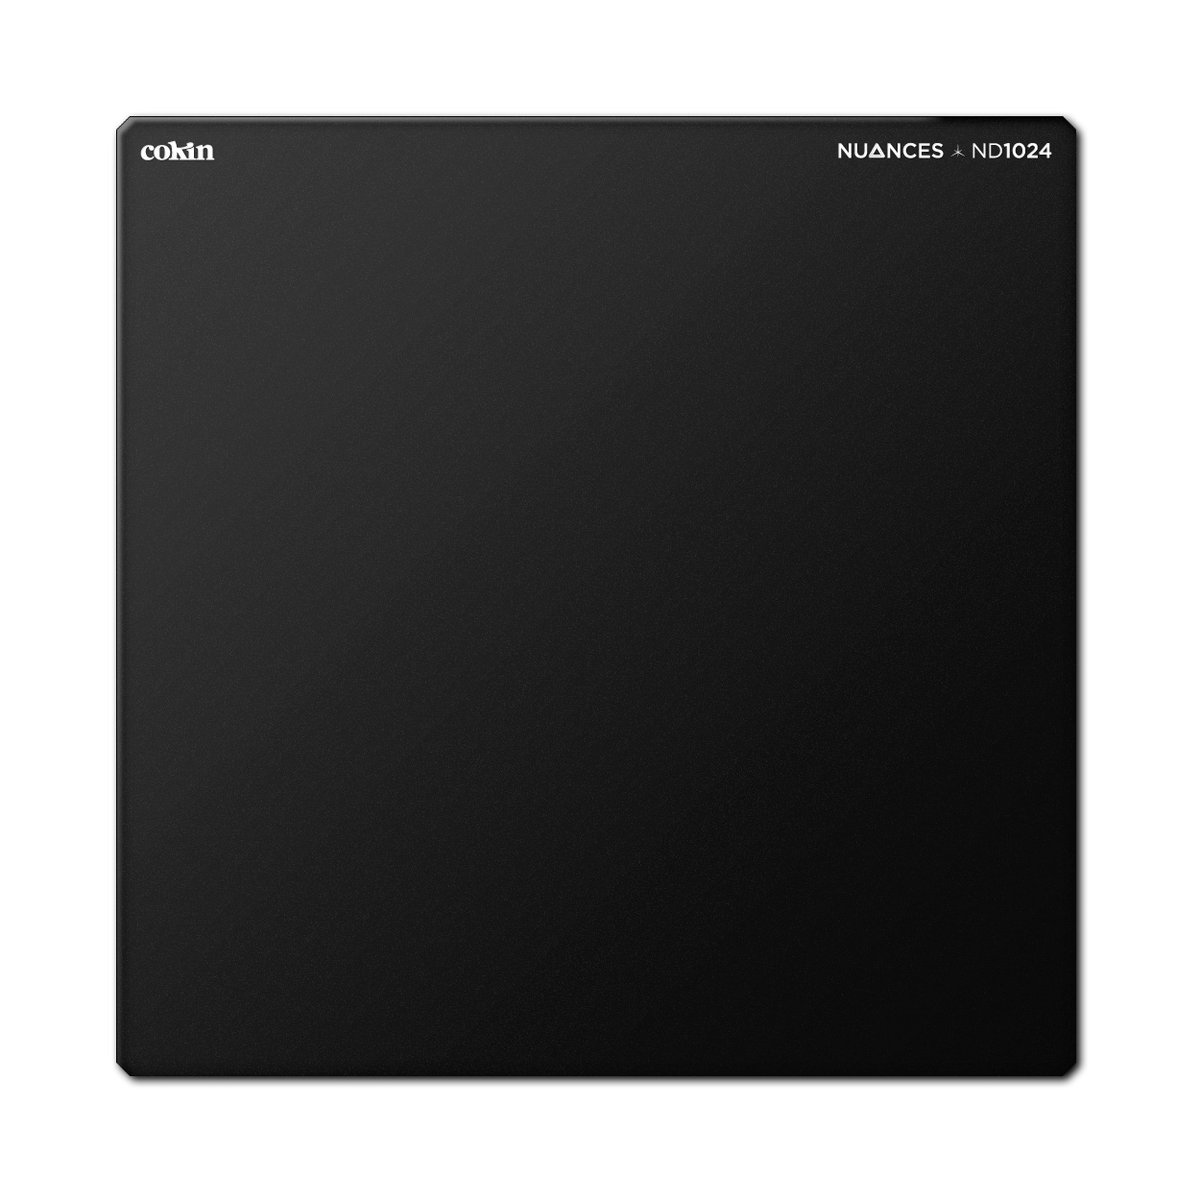 Cokin Nuances ND1024 - 10-Stop Filter